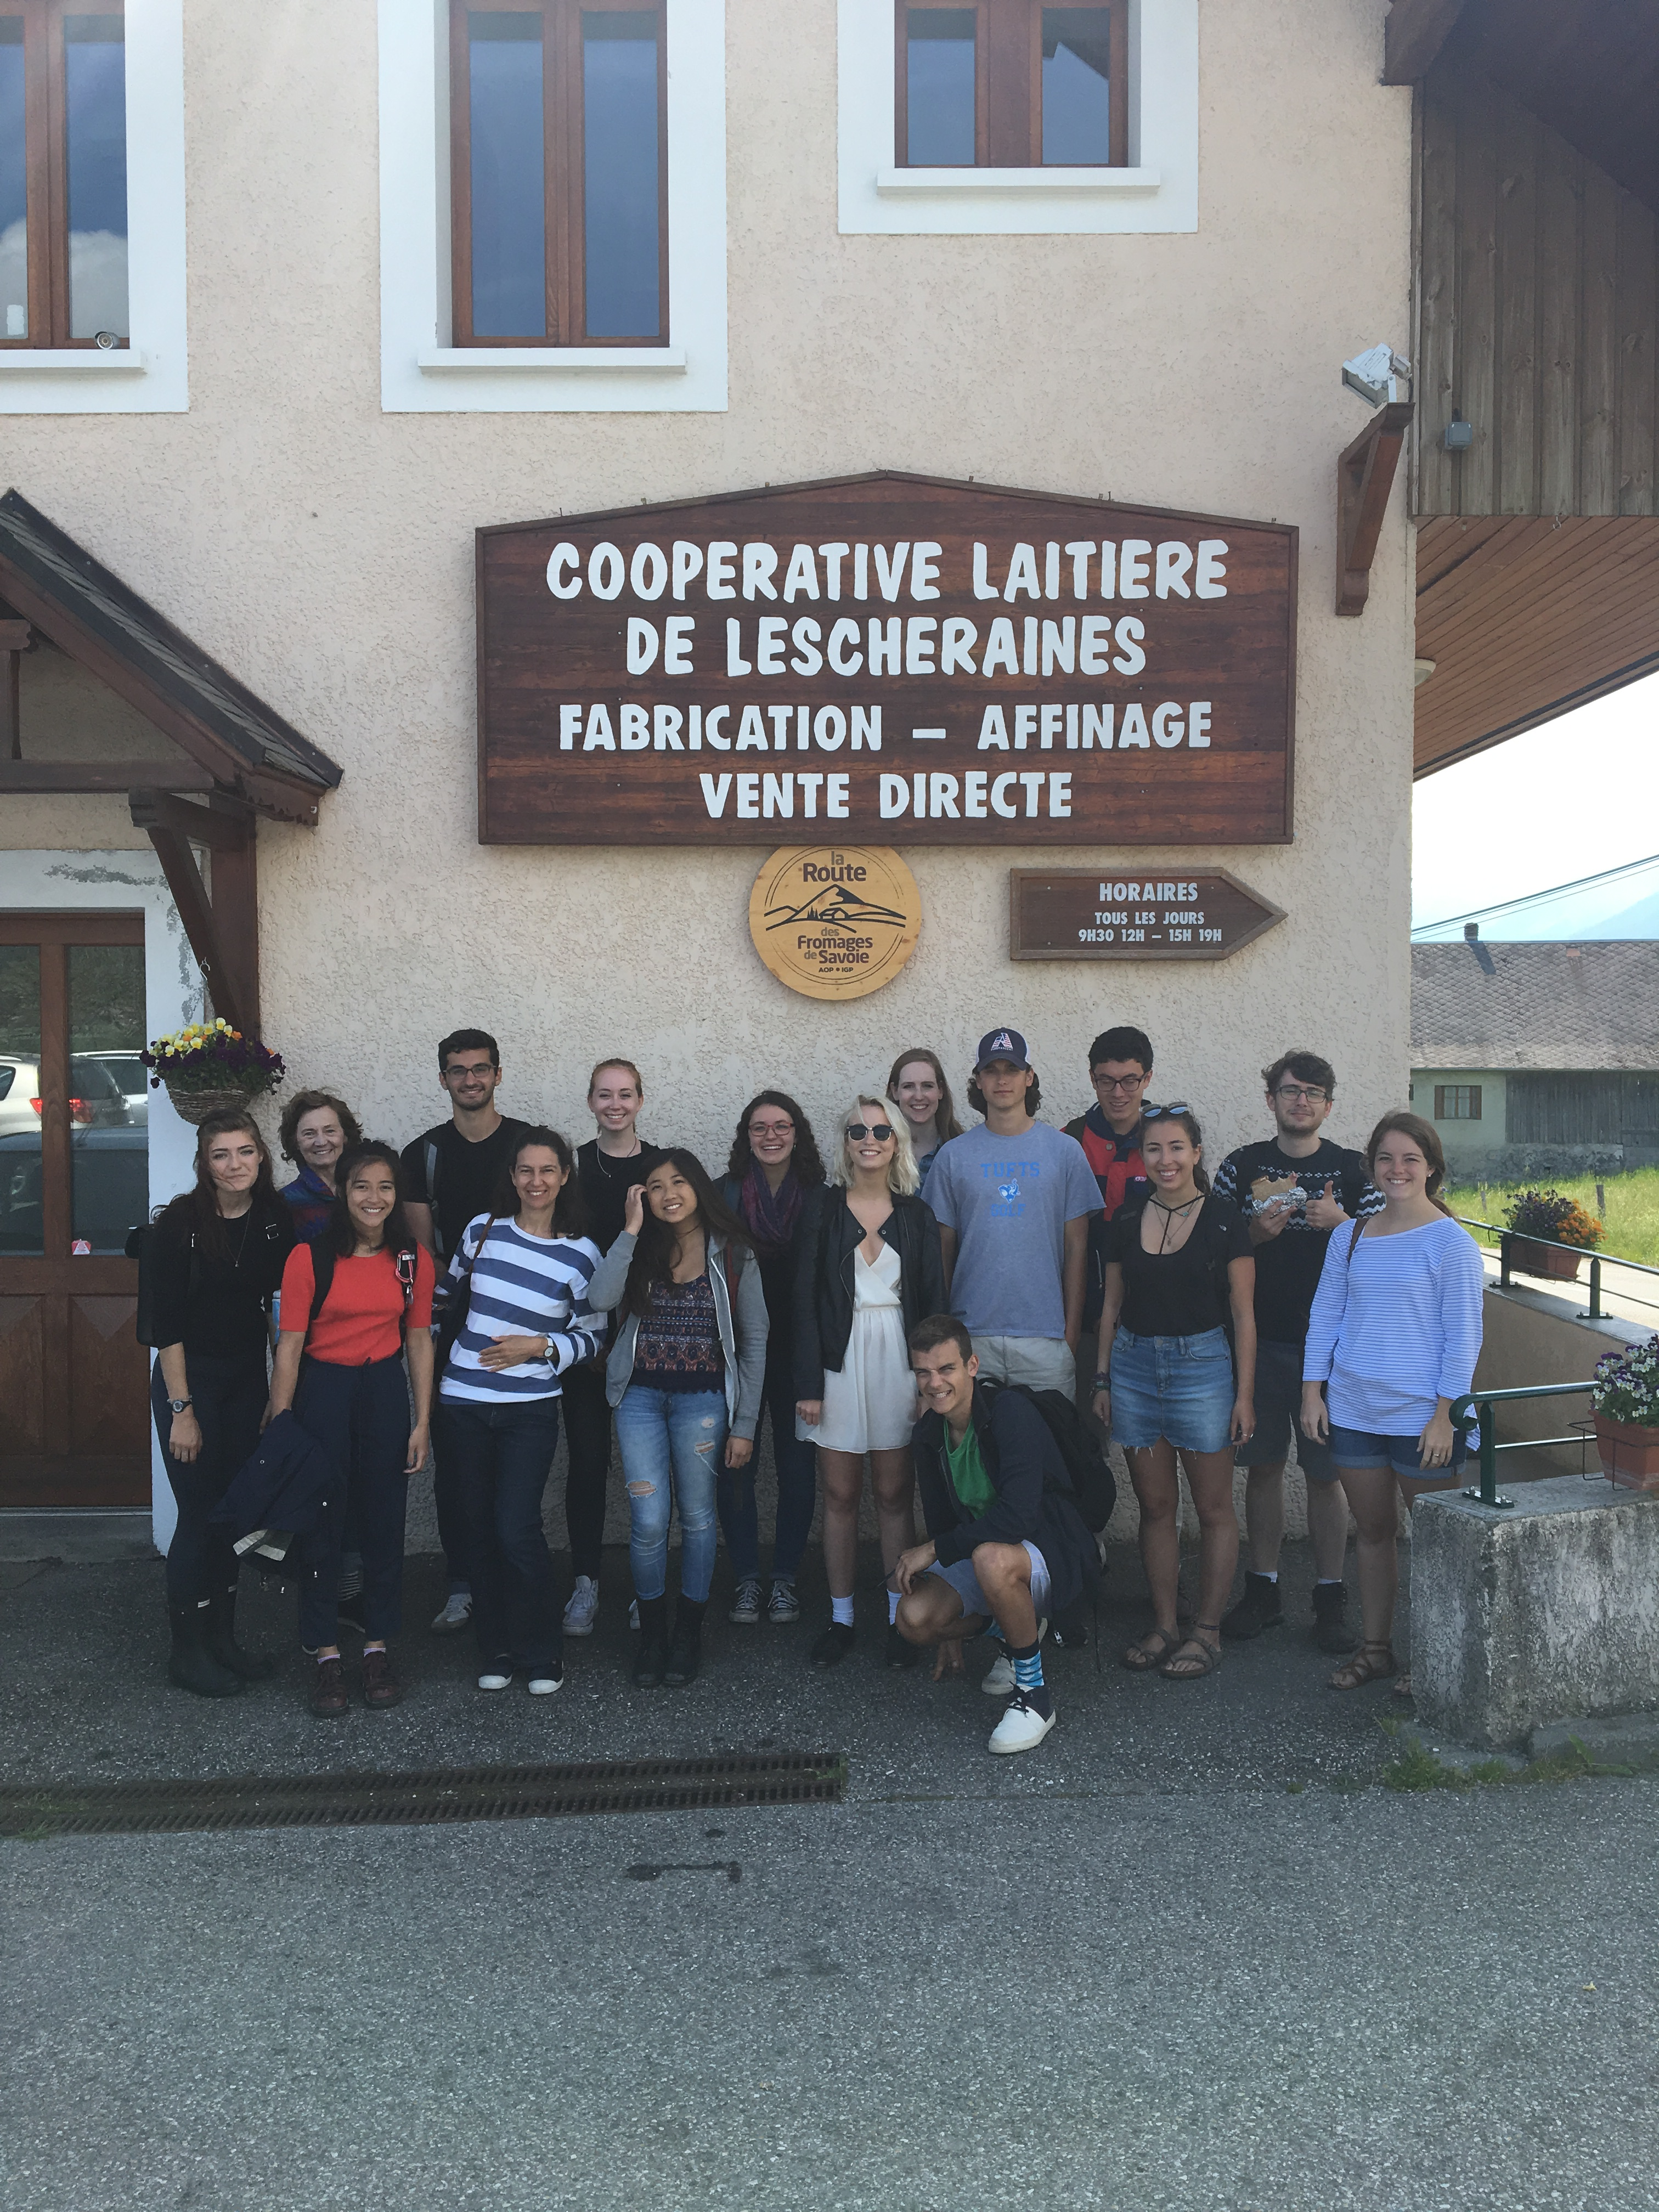 A group of students standing together in front of the Cooperative laitiere de Lescheraines